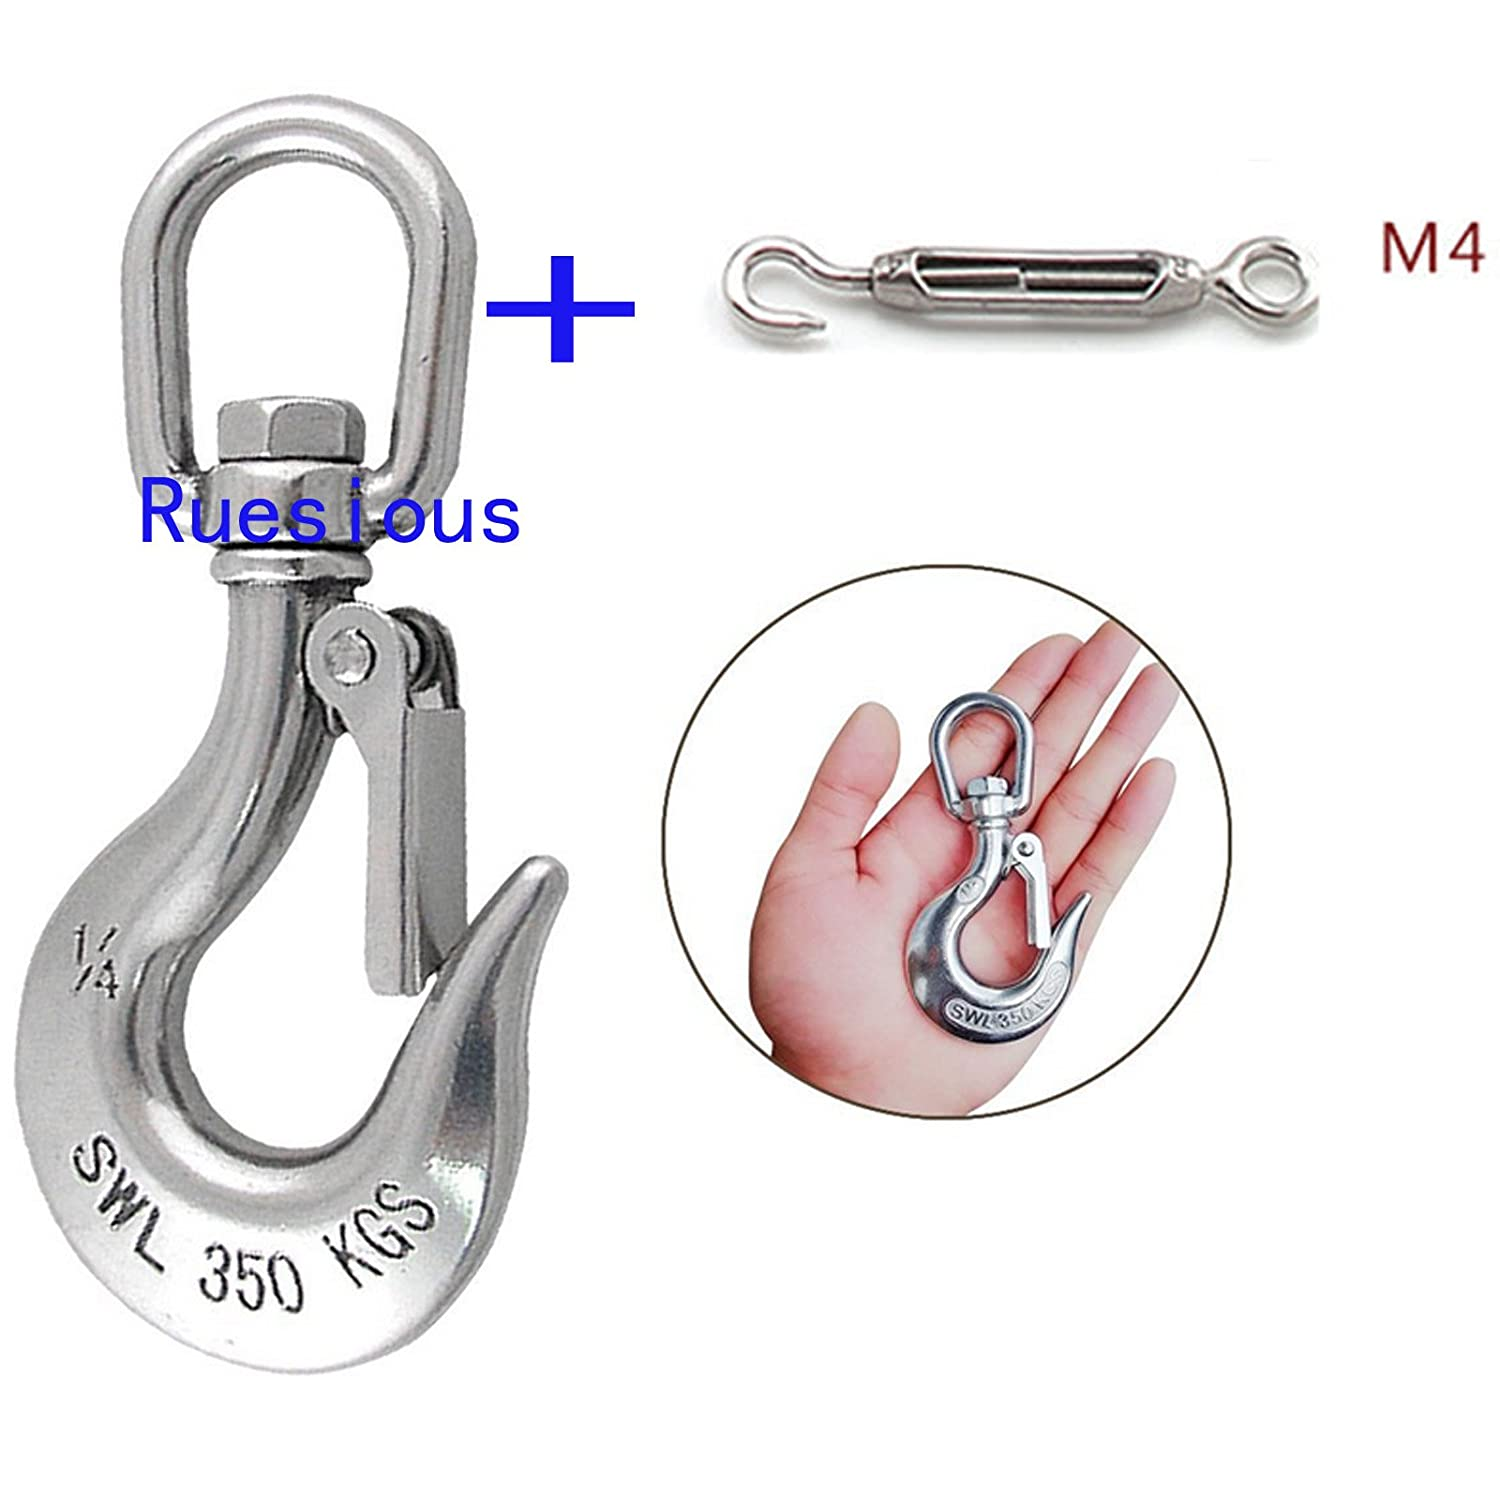 Ruesious hanging chair/hanging chair rotary hook/cargo hook, stainless steel 770 pound capacity hammock rotary hook outdoor or indoor use